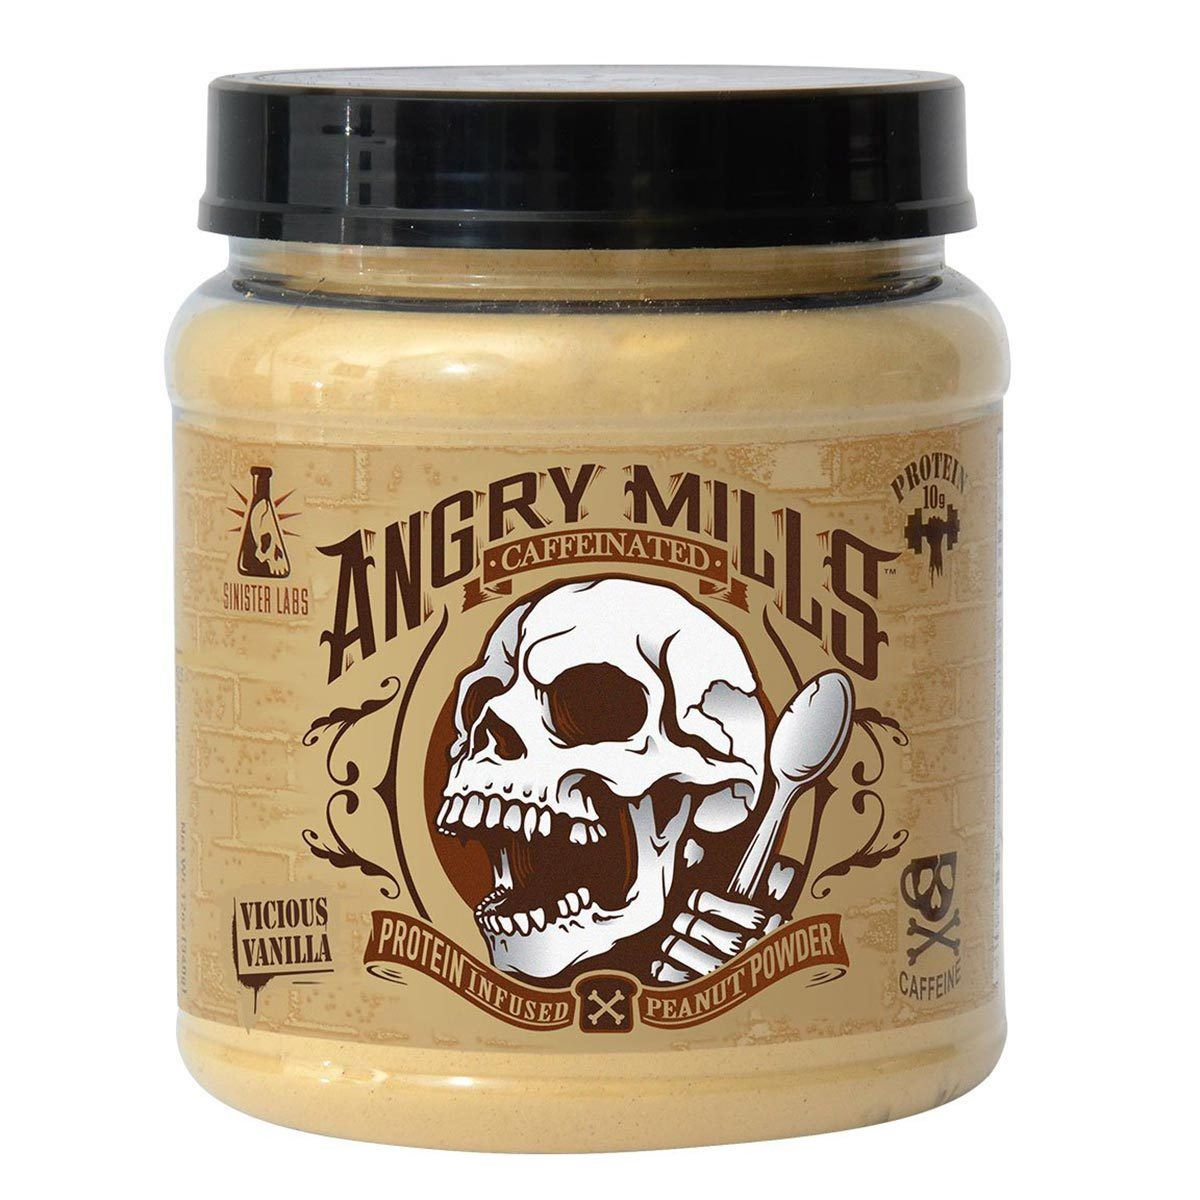 Sinister Labs Angry Mills Protein Infused Peanut Powder Caffeinated Vicious Vanilla Foods & Snacks Sinister Labs  (1059326459947)